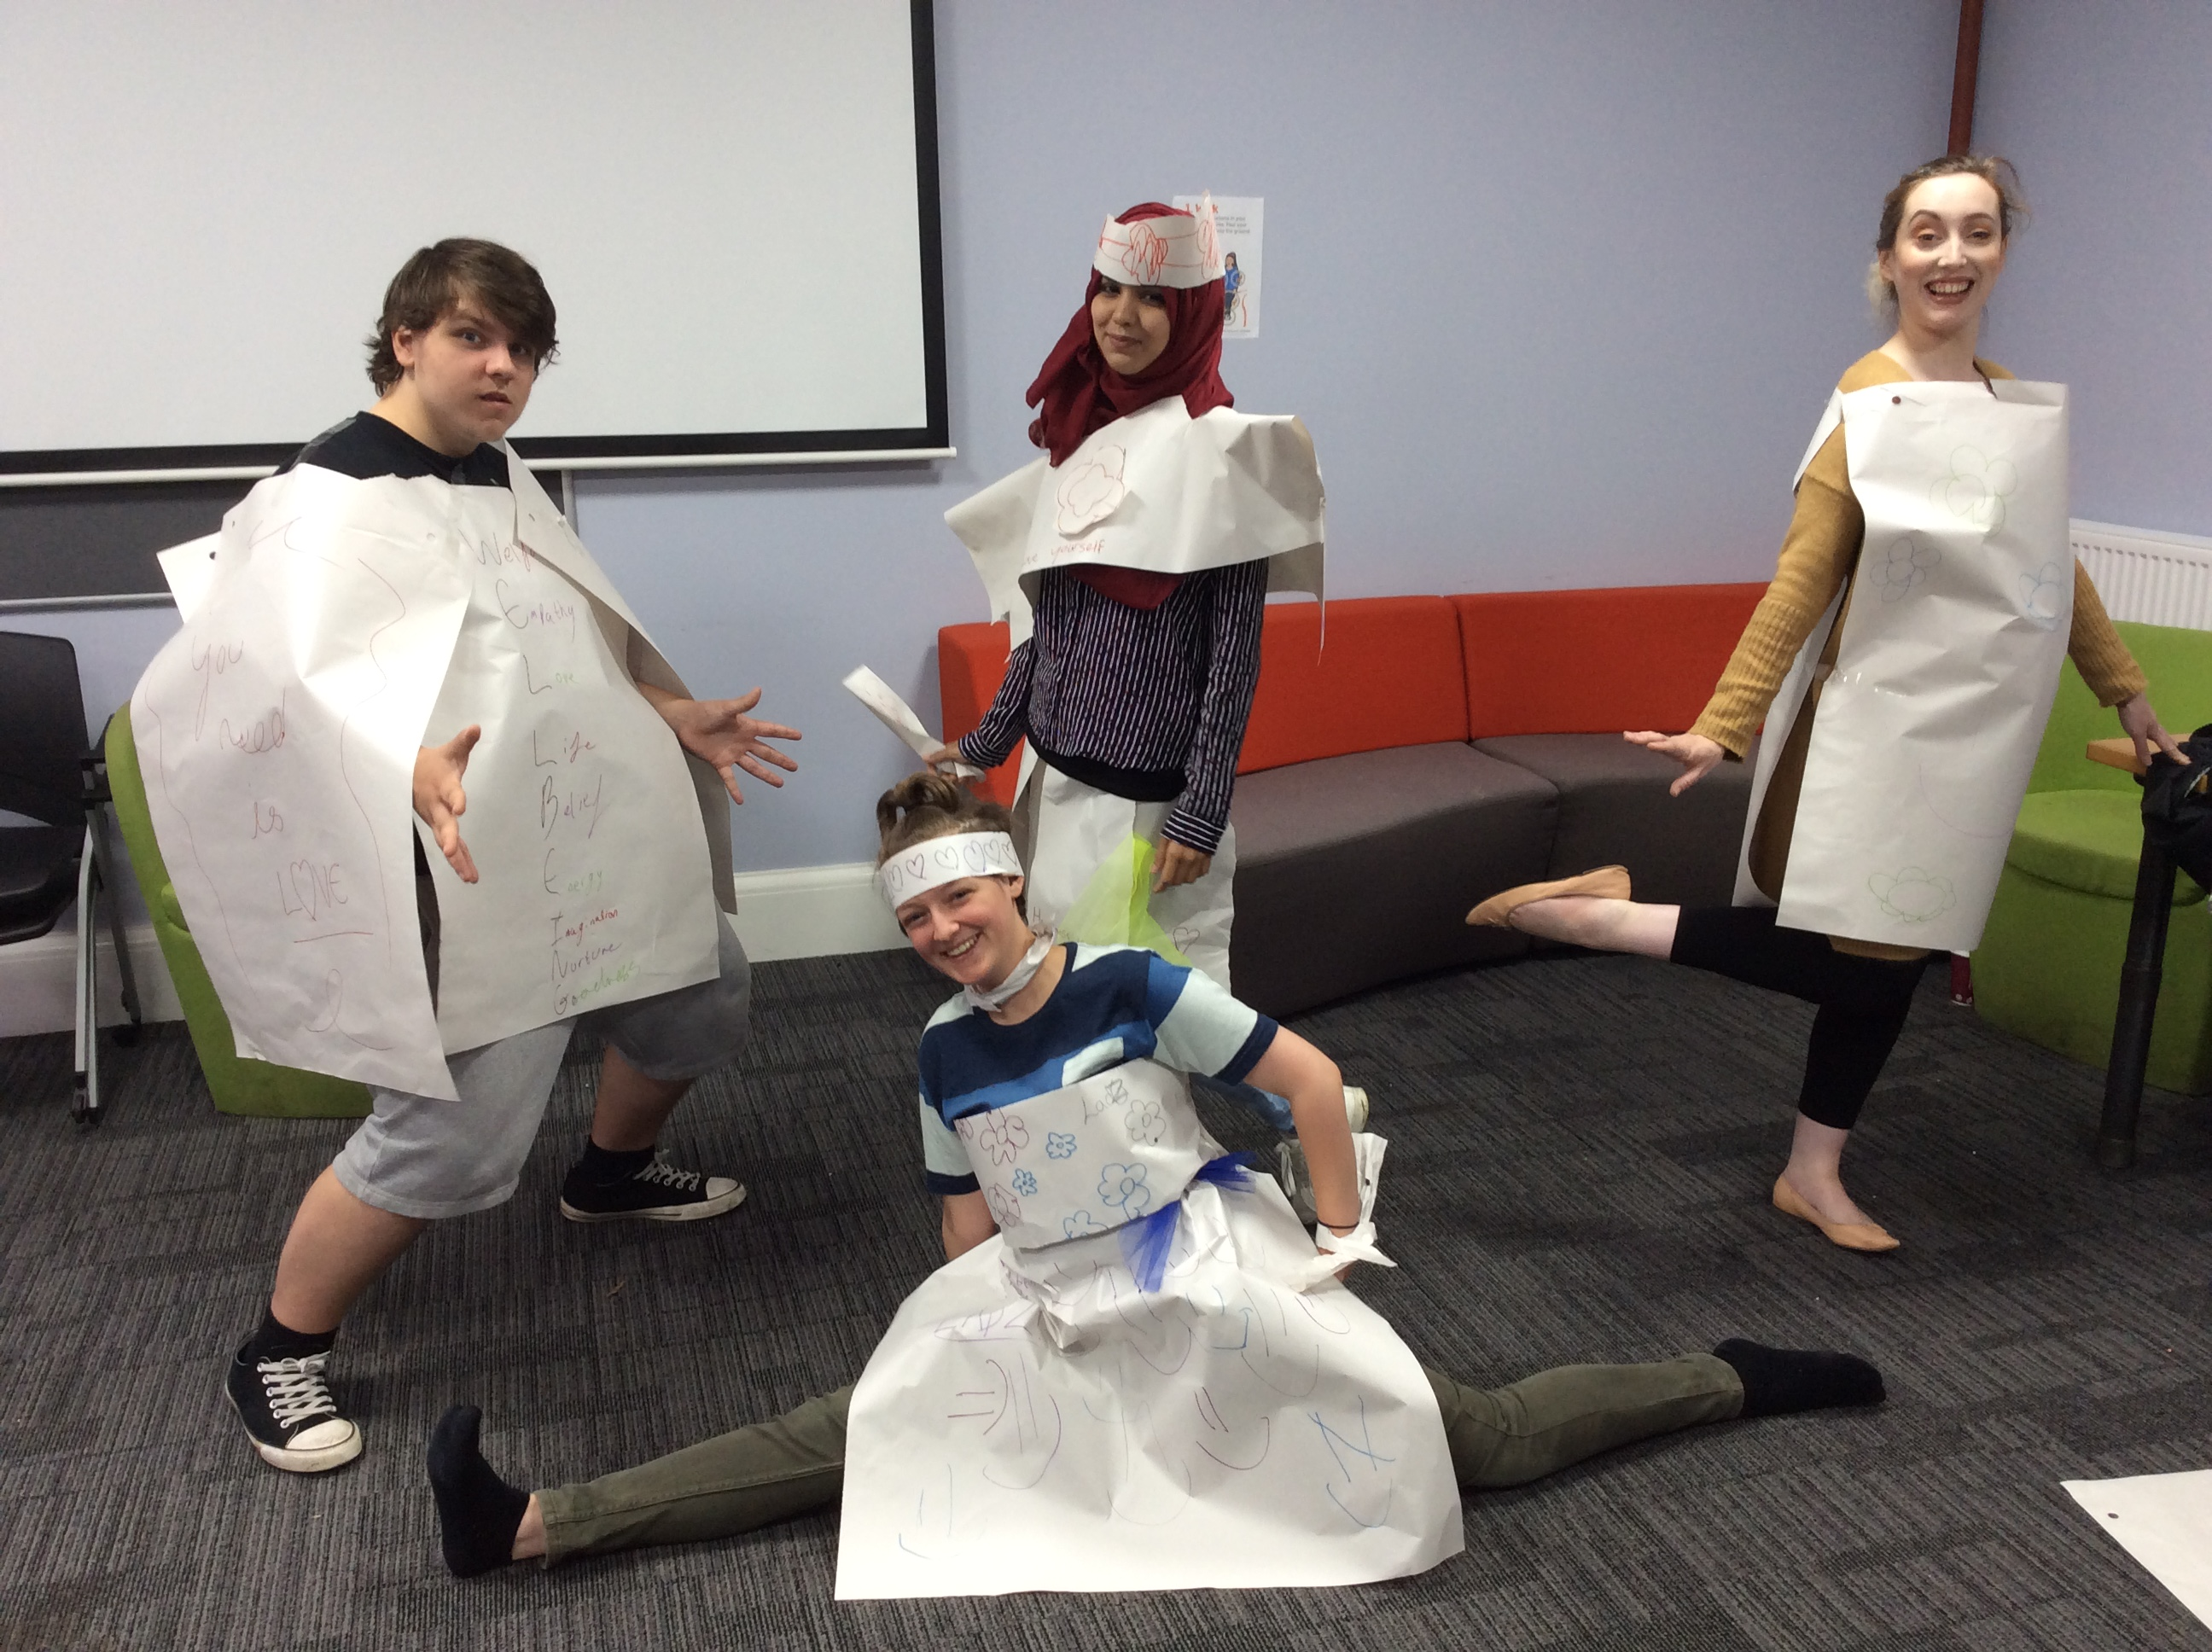 four people dressed in paper costumes